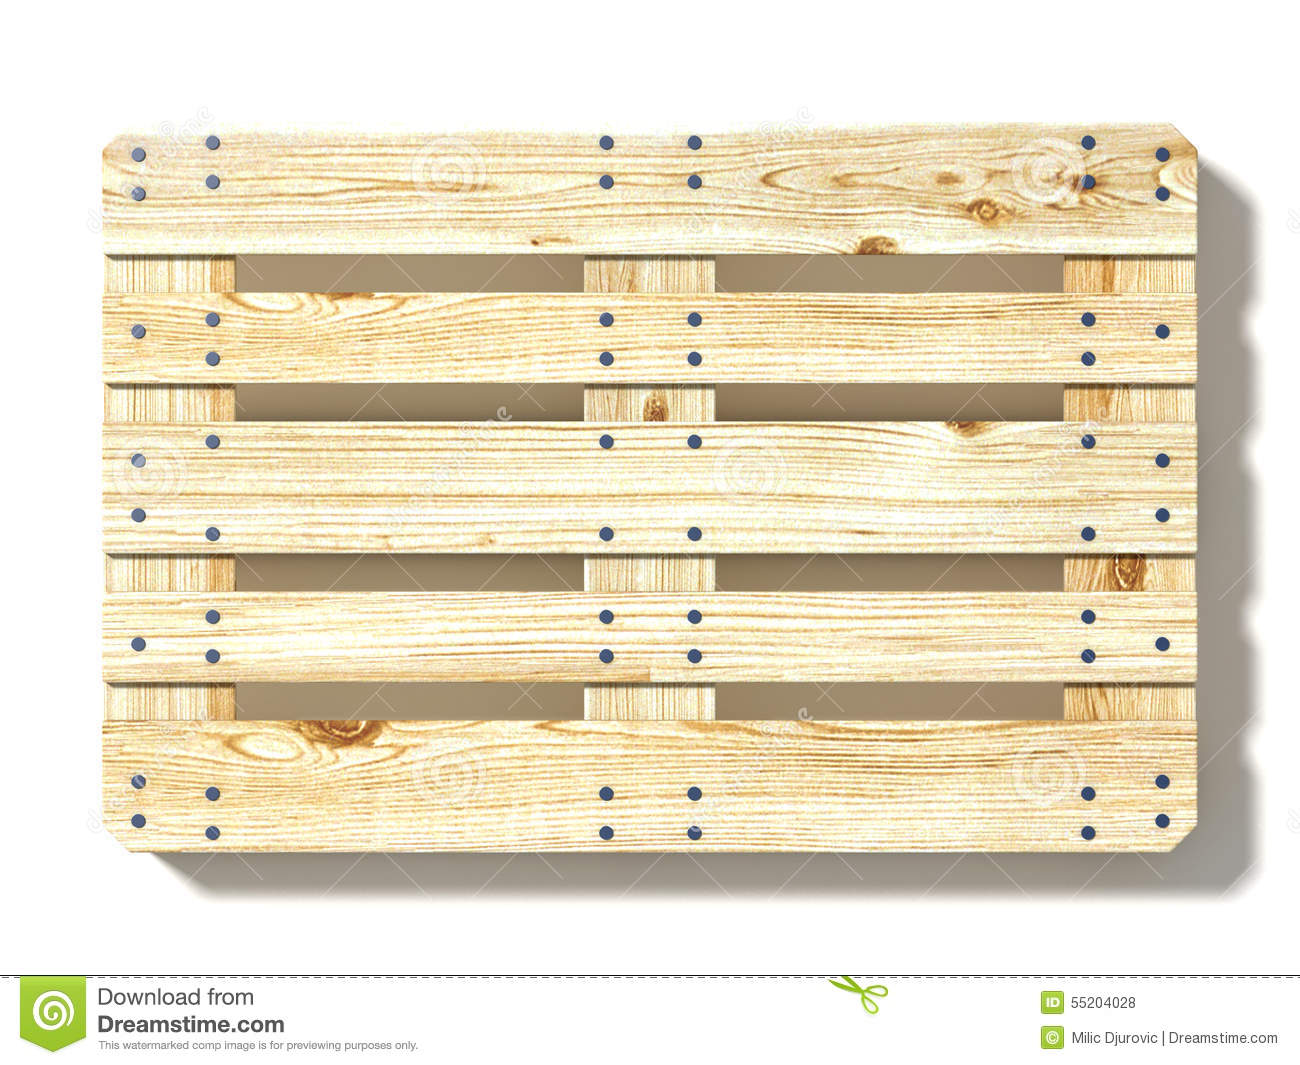 Euro Pallet. Top View Stock Illustration - Image: 55204028